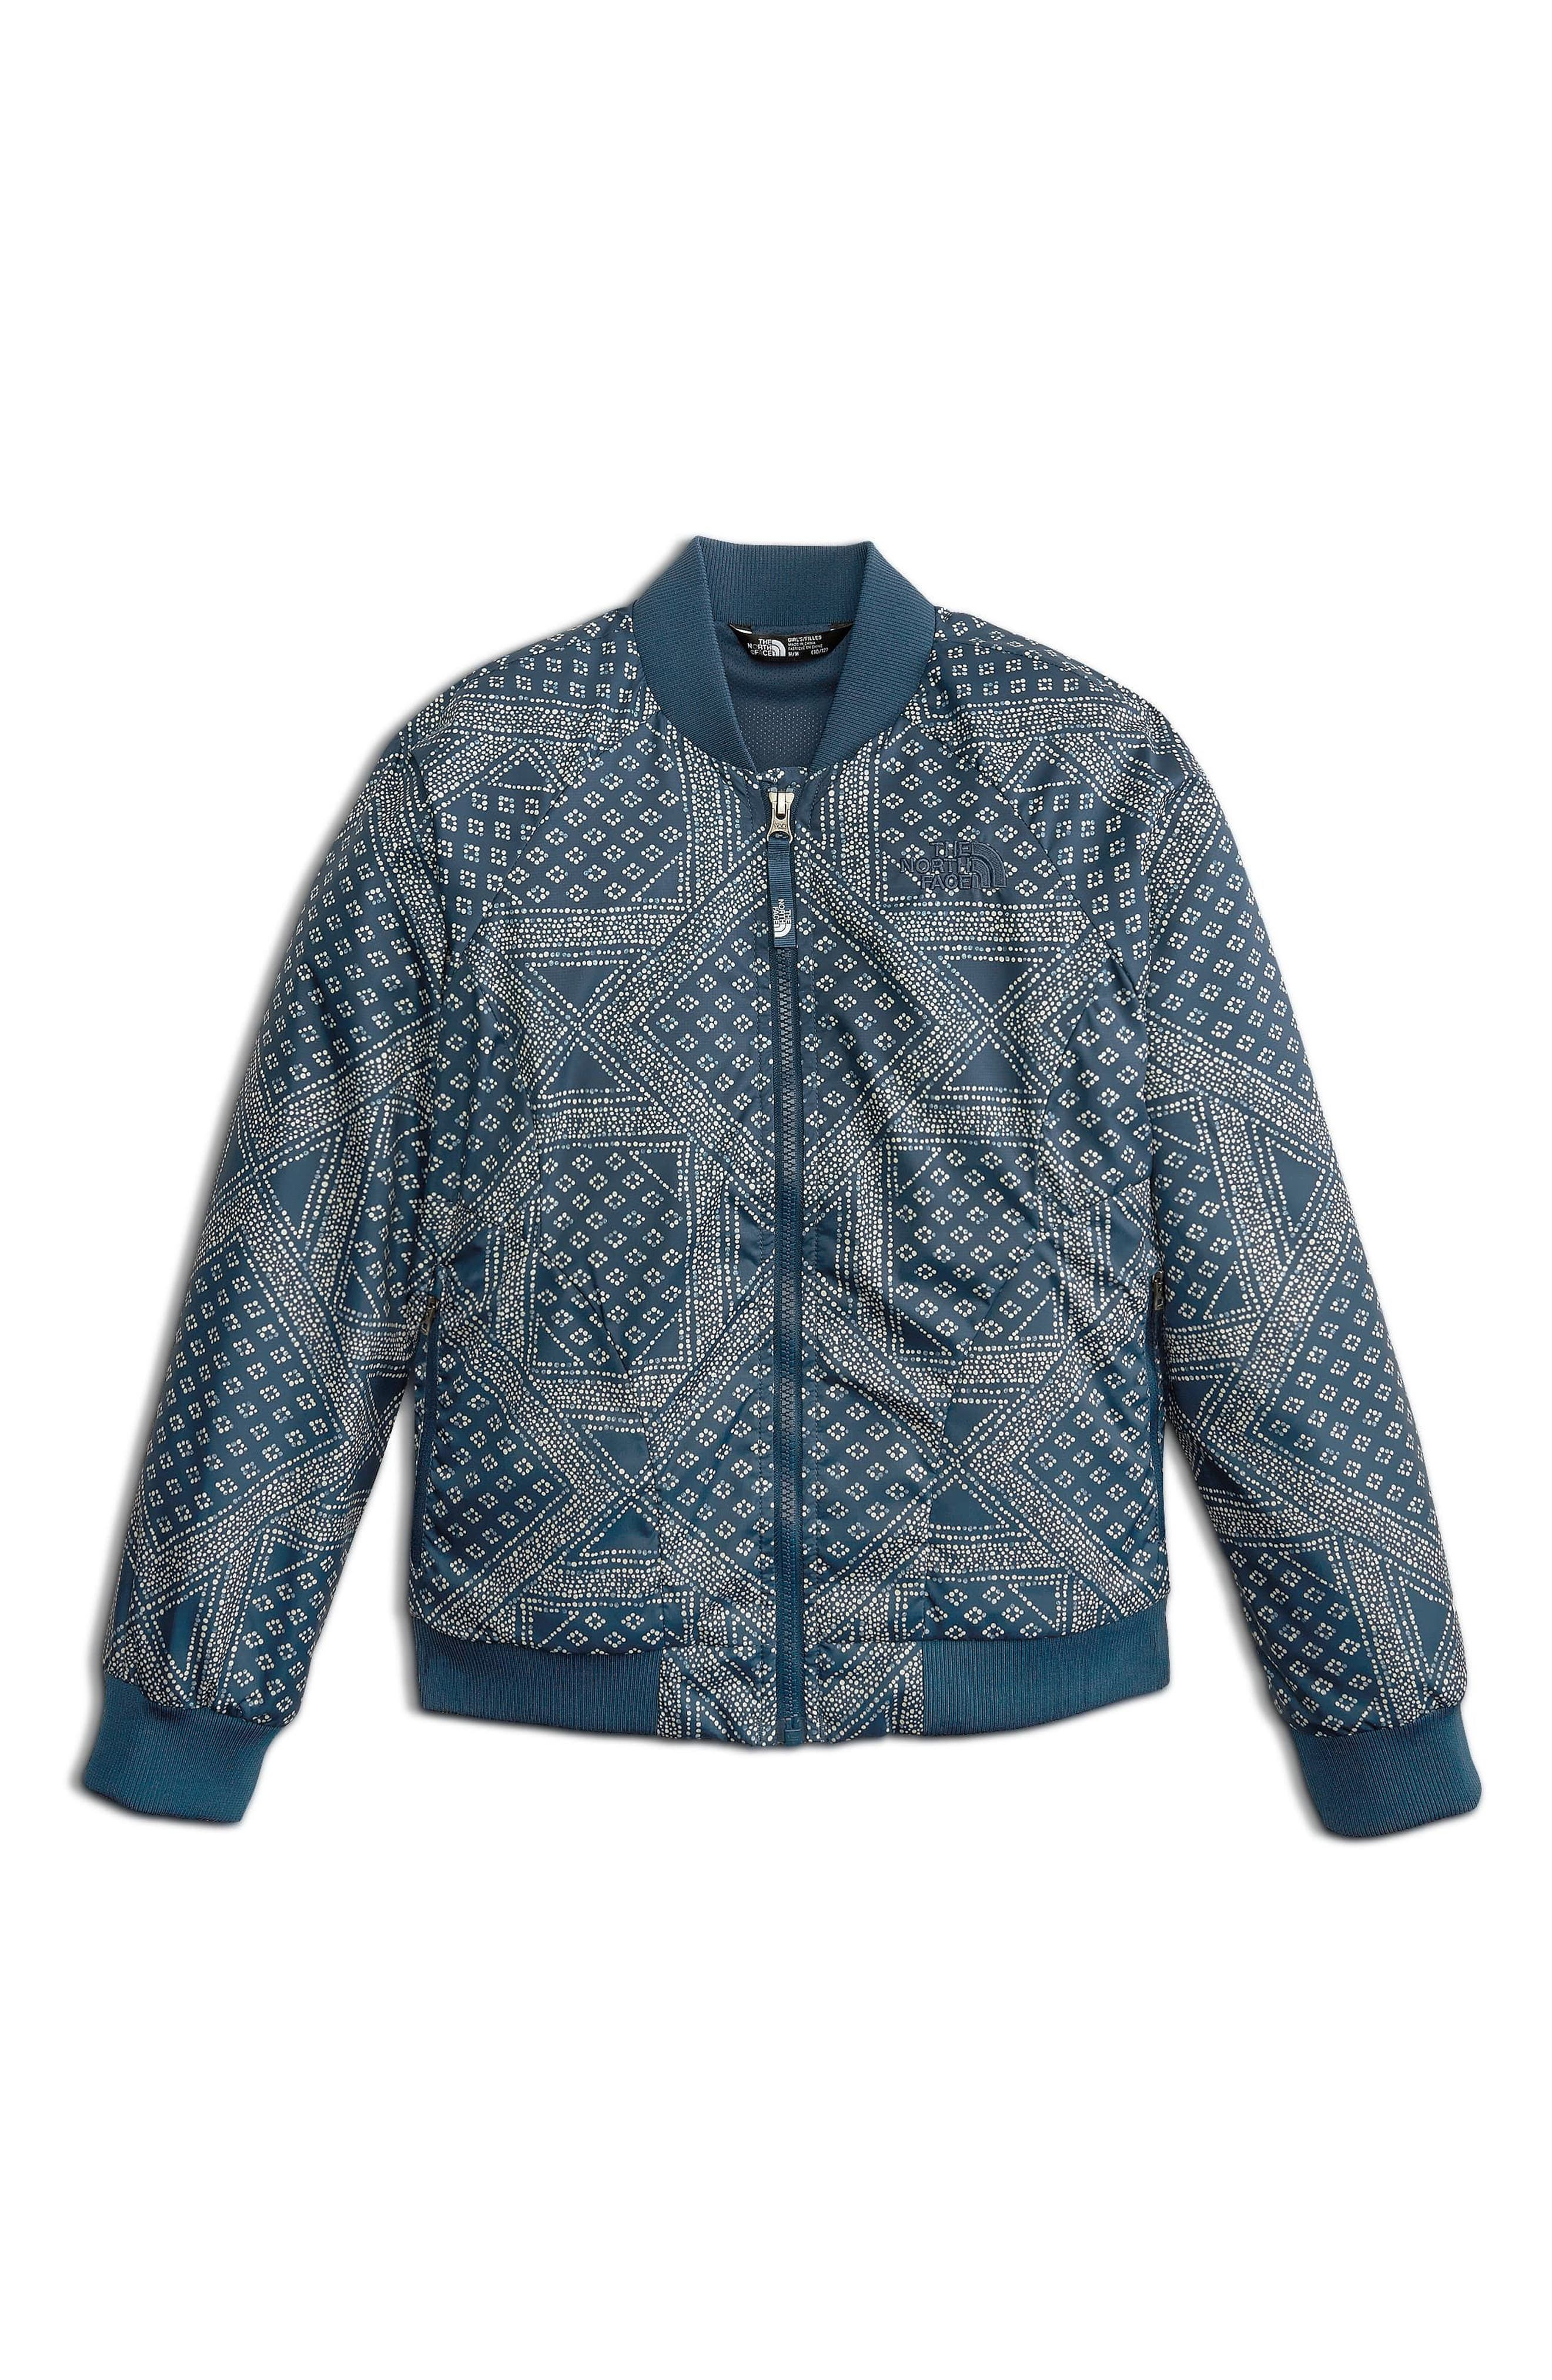 Flurry Wind Bomber Jacket,                             Main thumbnail 1, color,